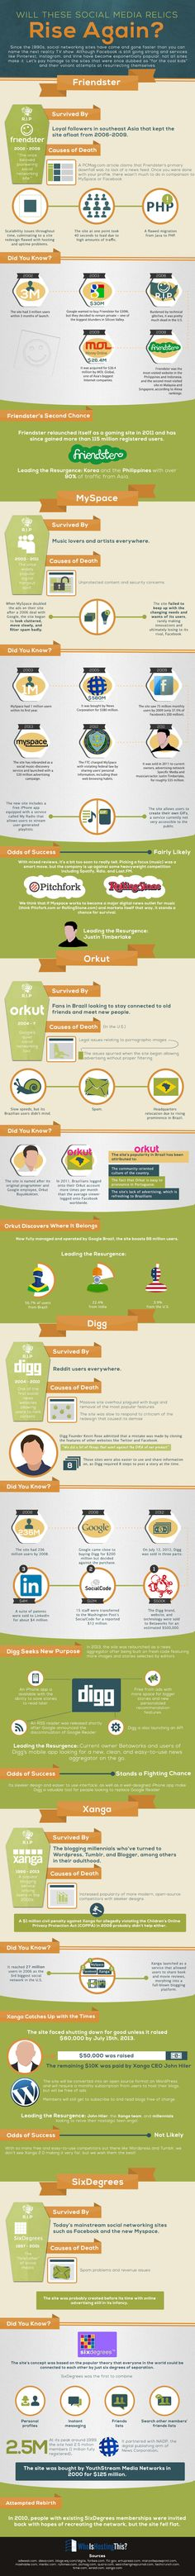 Will The Relics Of Myspace, Friendster, Orkut, Digg And Xanga Rise Again in 2014 #infographic #socialmedia